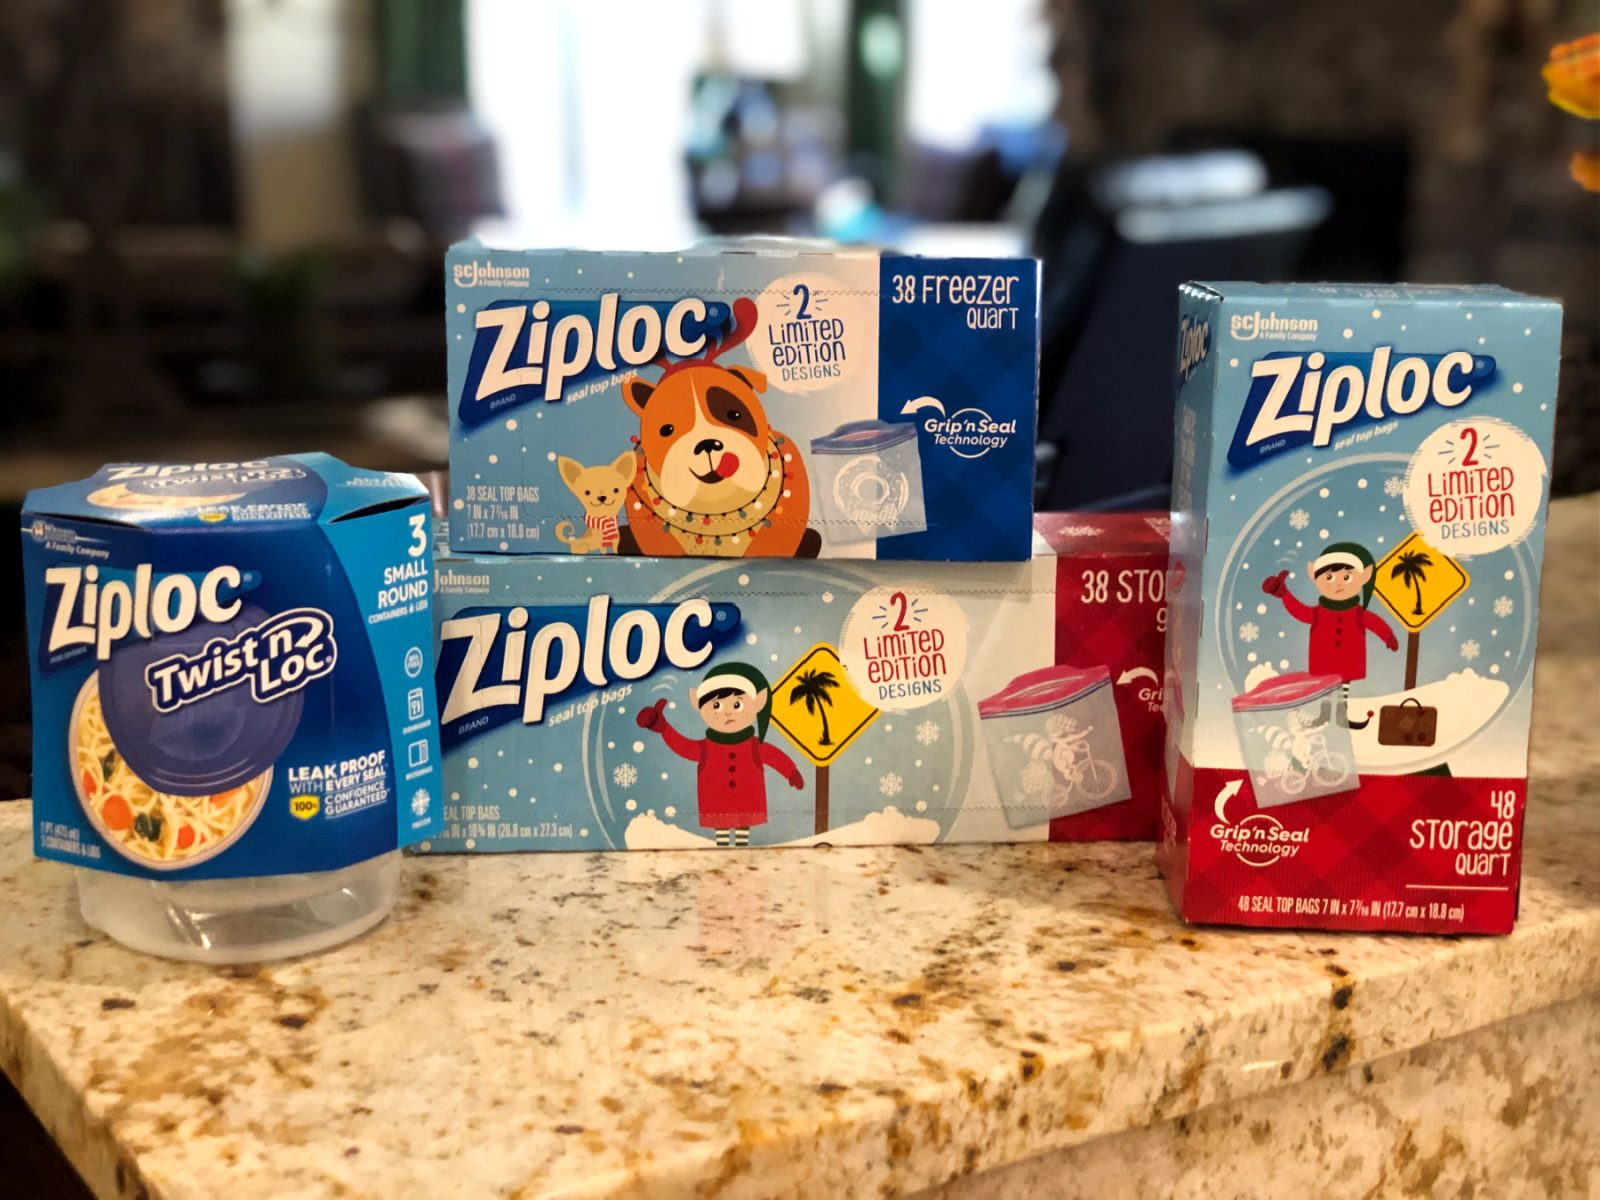 Spread Holiday Cheer With Ziploc® Brand Bags And Containers - Save At Publix on I Heart Publix